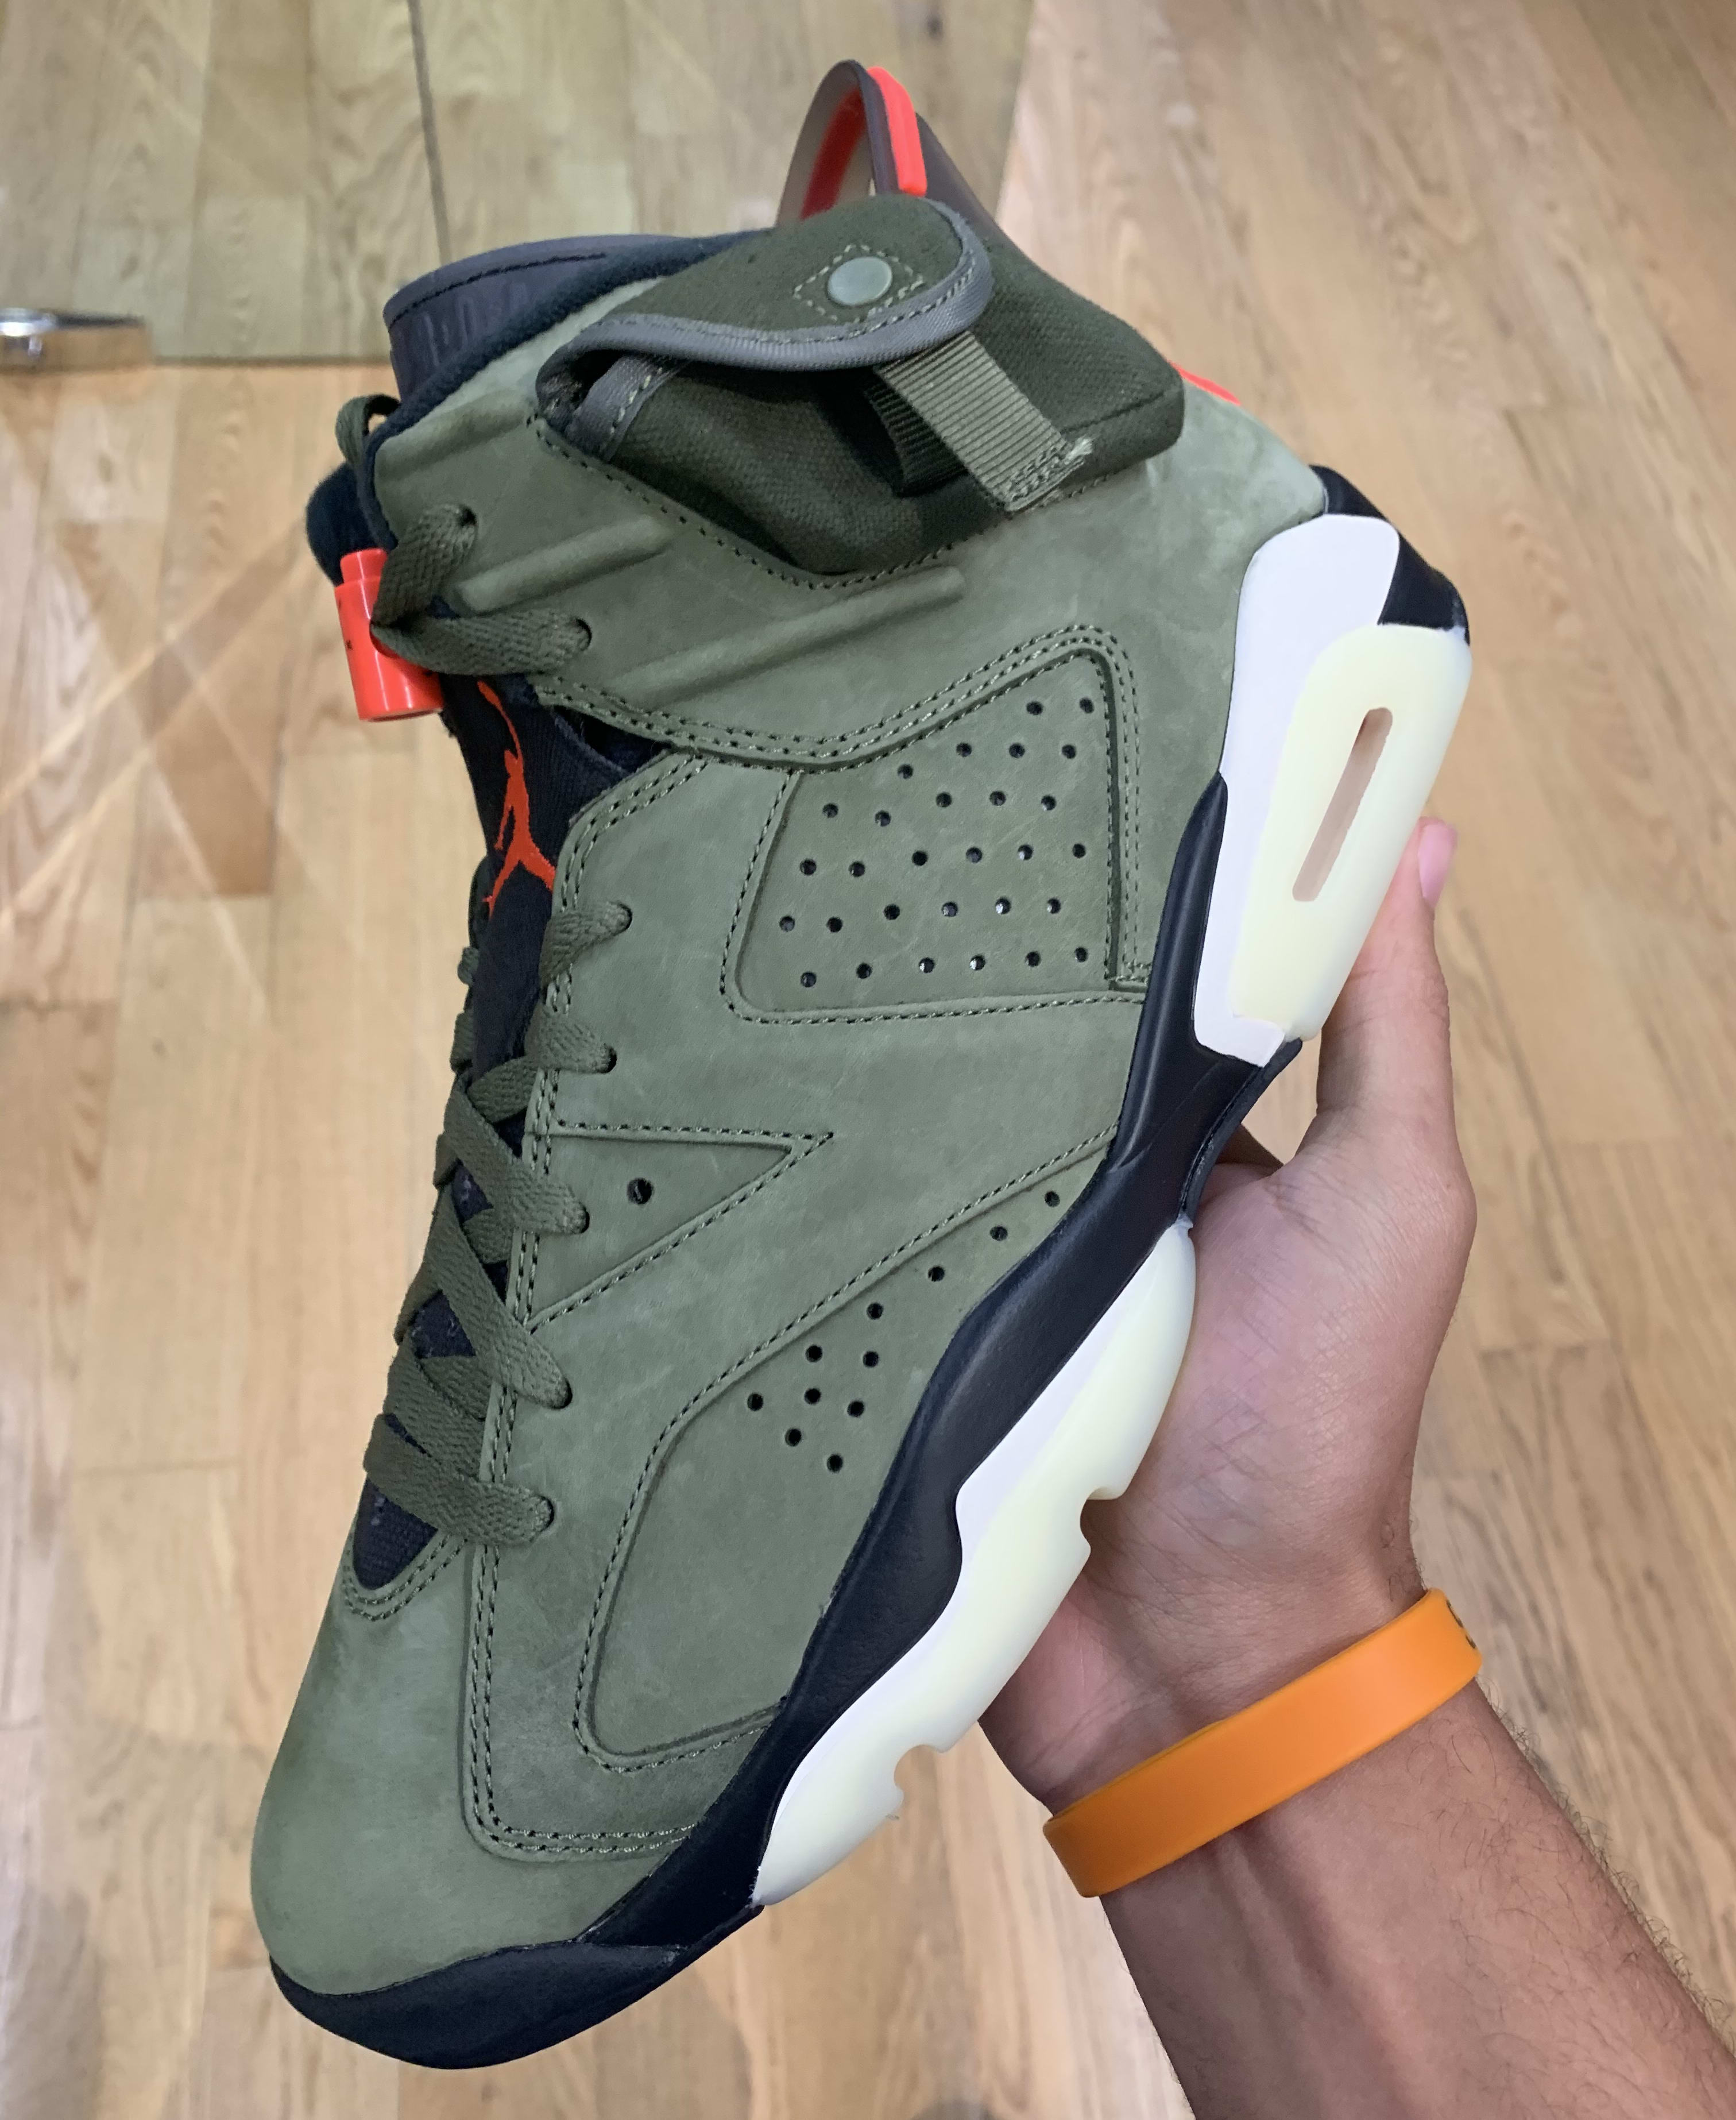 Travis Scott x Air Jordan 6 'Medium Olive/Black/Sail/University Red' CN1084-200 (Lateral)